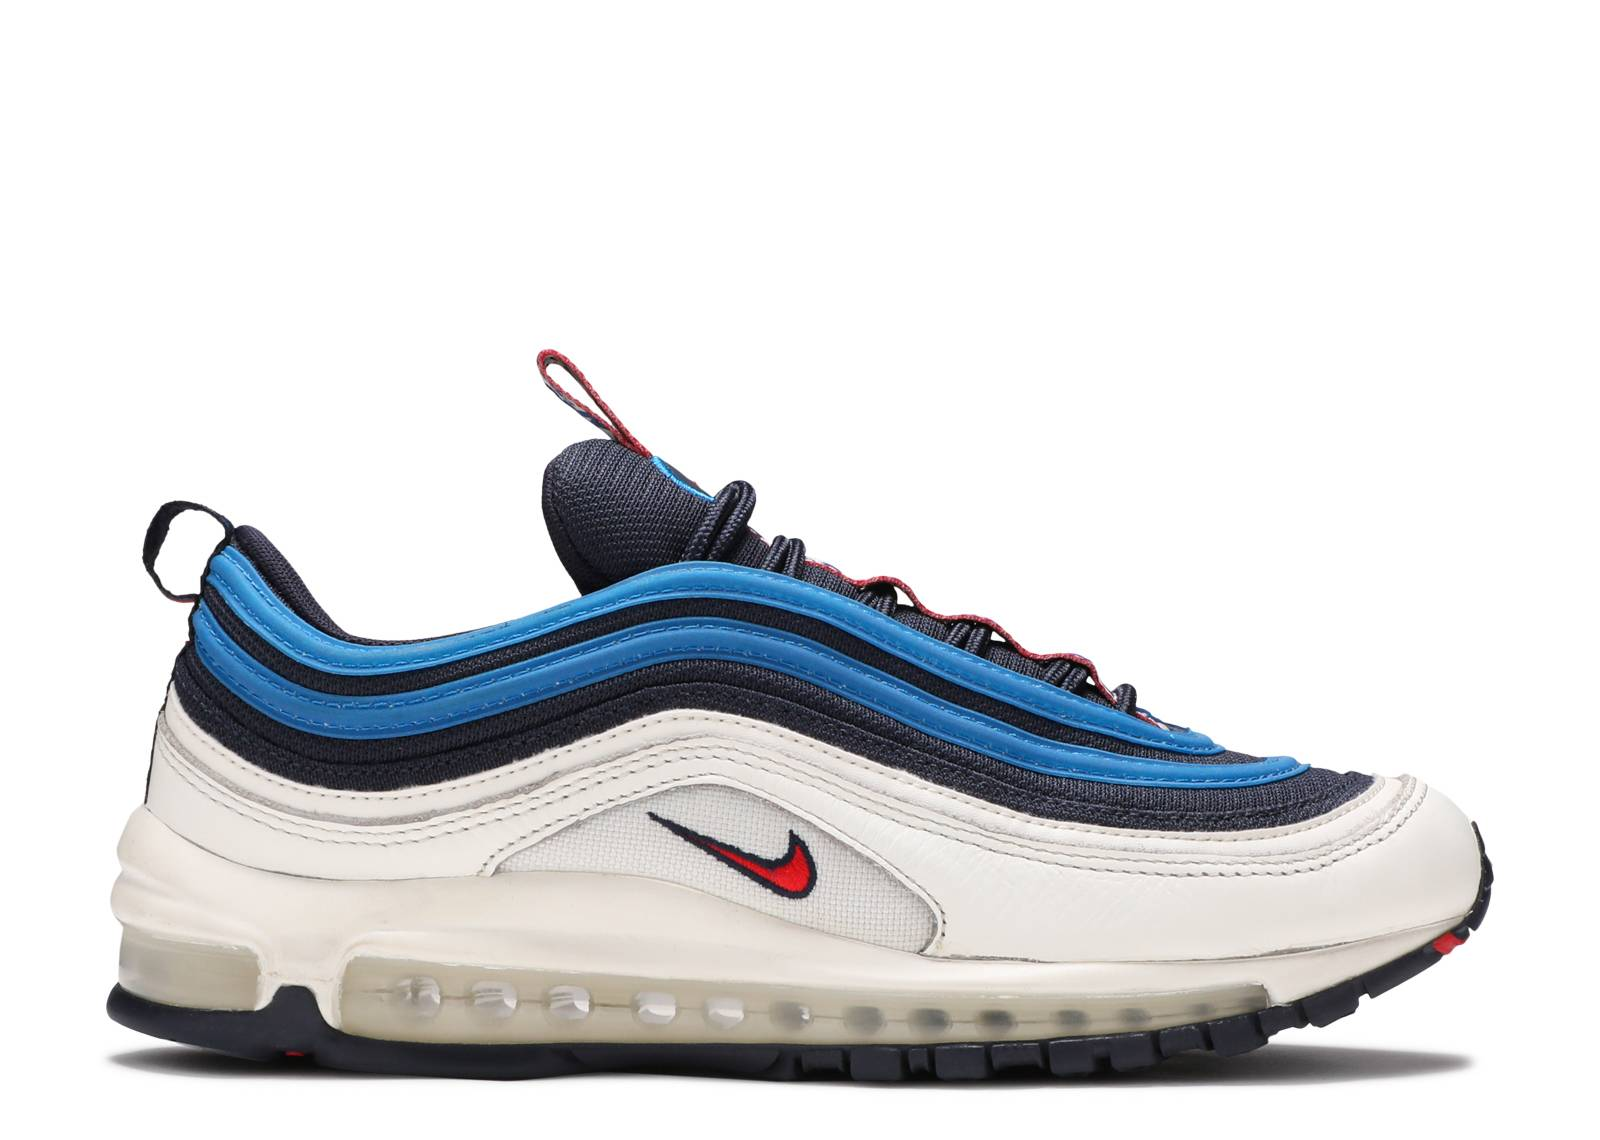 air max 97 se pull tab nike aq4126 400 obsidian university red sail flight club. Black Bedroom Furniture Sets. Home Design Ideas